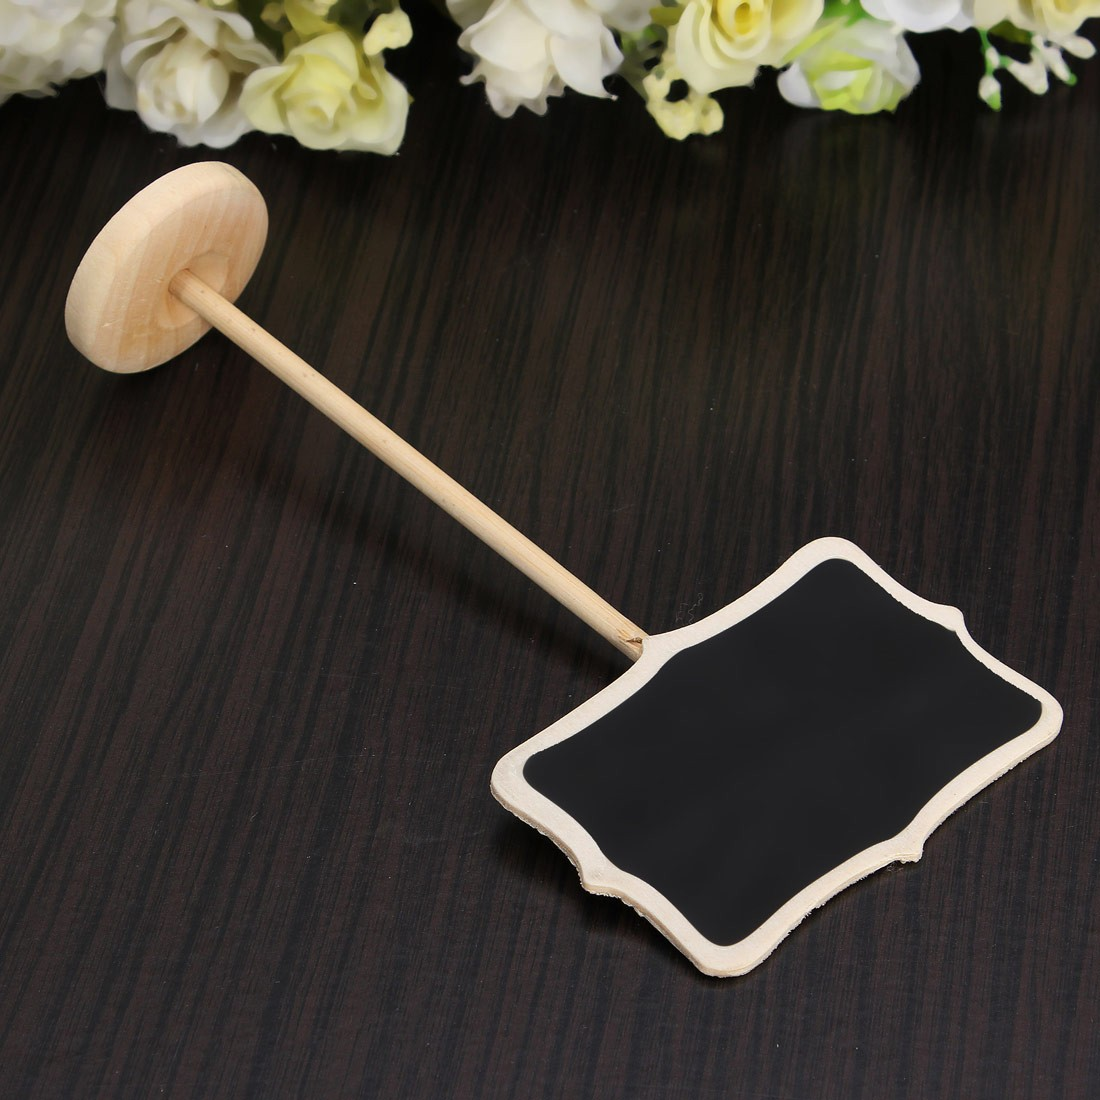 Wedding Party Decoration Mini Chalkboard With Stand Seats Rectangle Love Style Seat Wooden Number Sign 8.8*5.5CM 18cm High